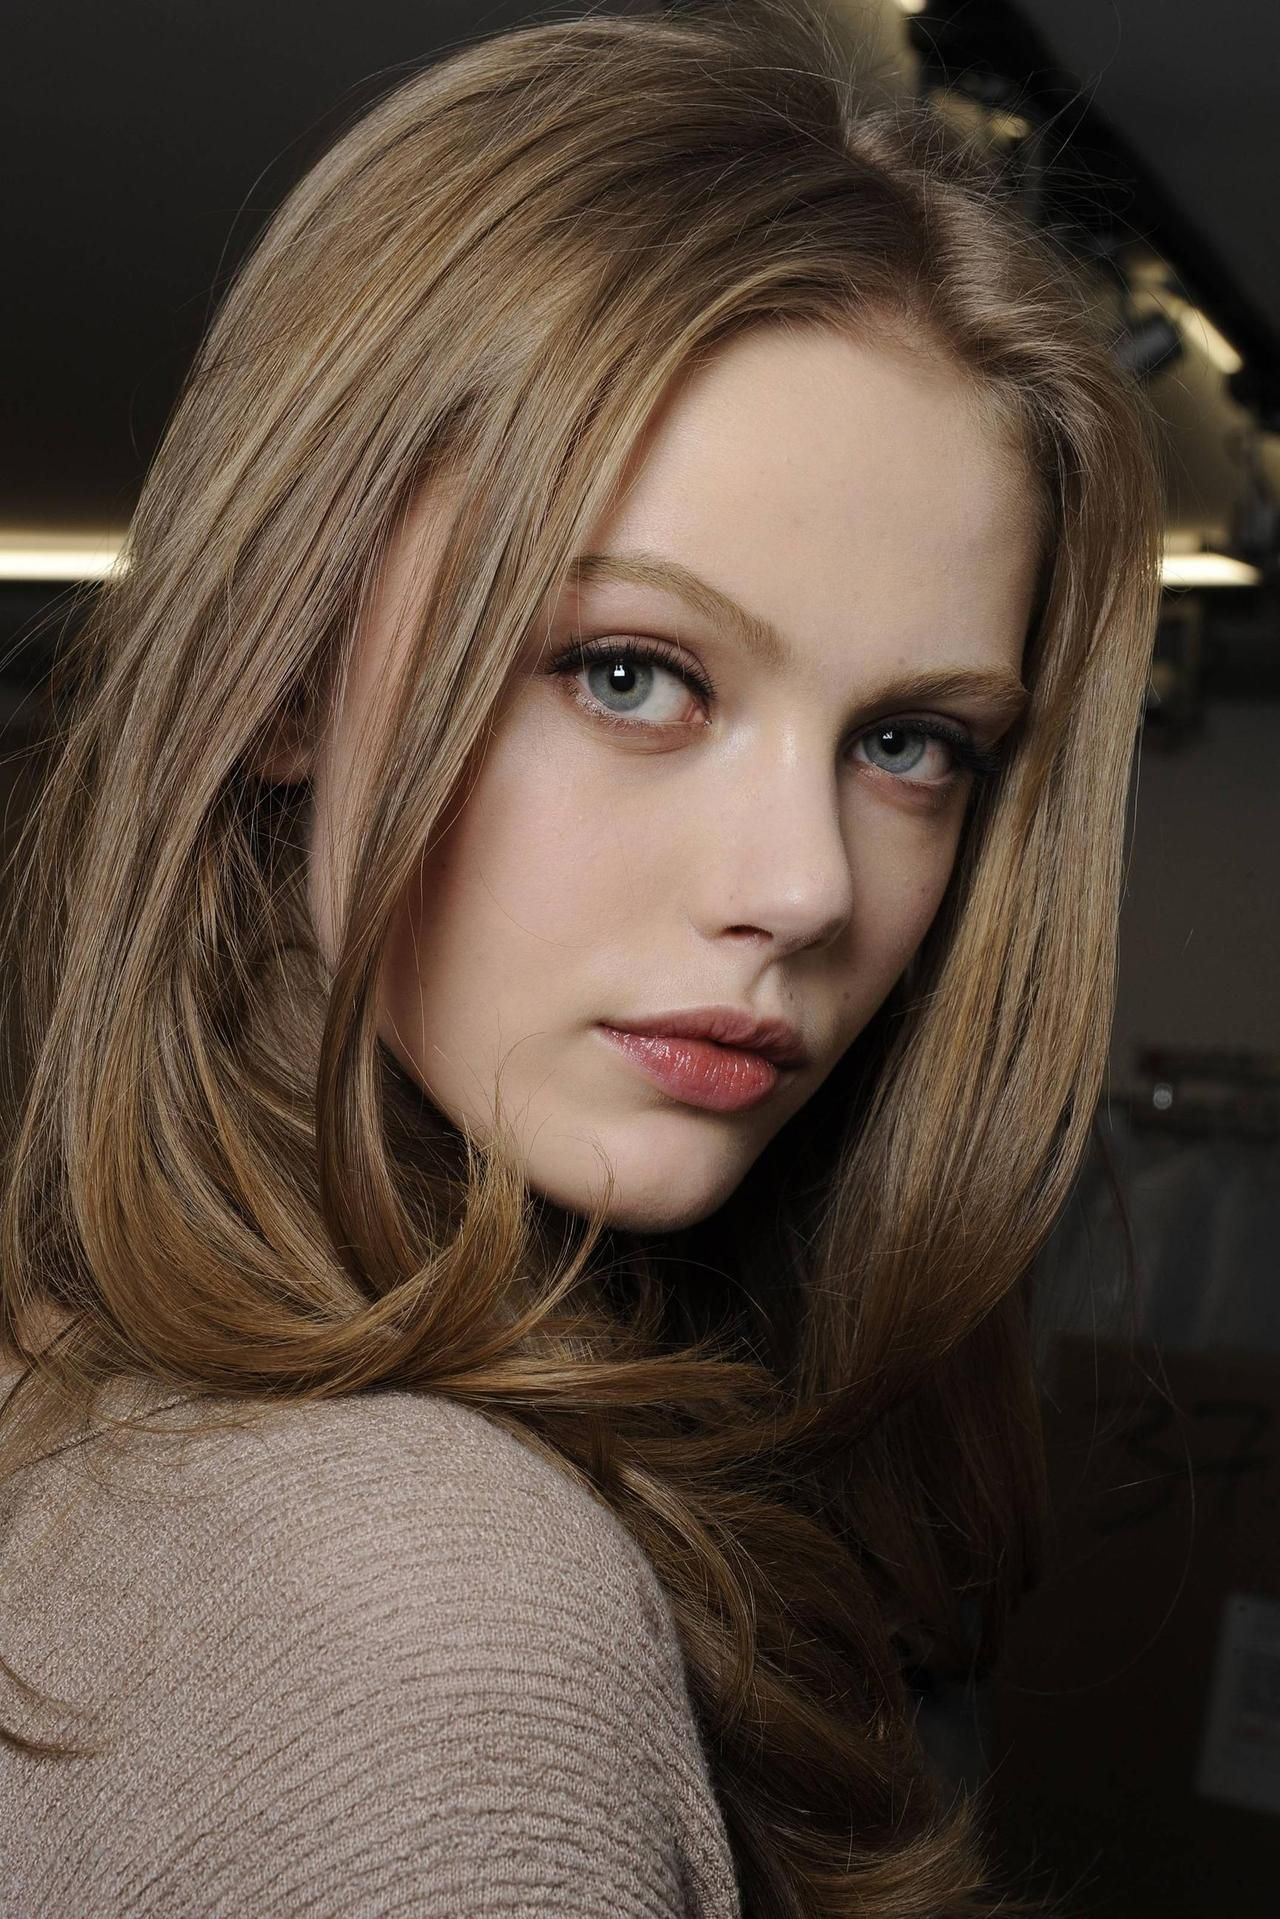 ICloud Frida Gustavsson nude photos 2019